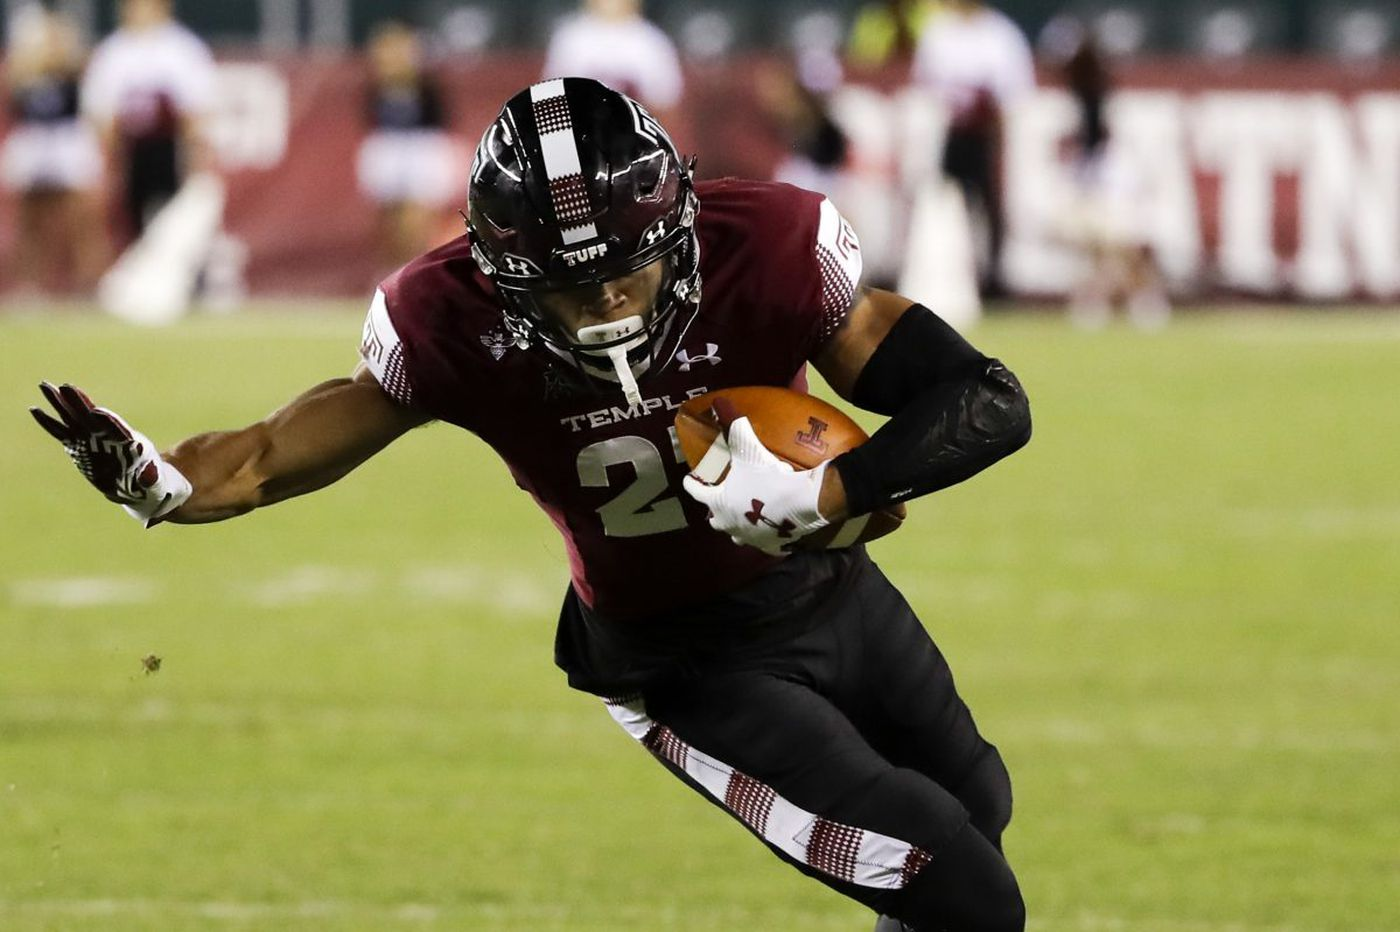 CB Derrek Thomas and WR Marshall Ellick transferring from Temple